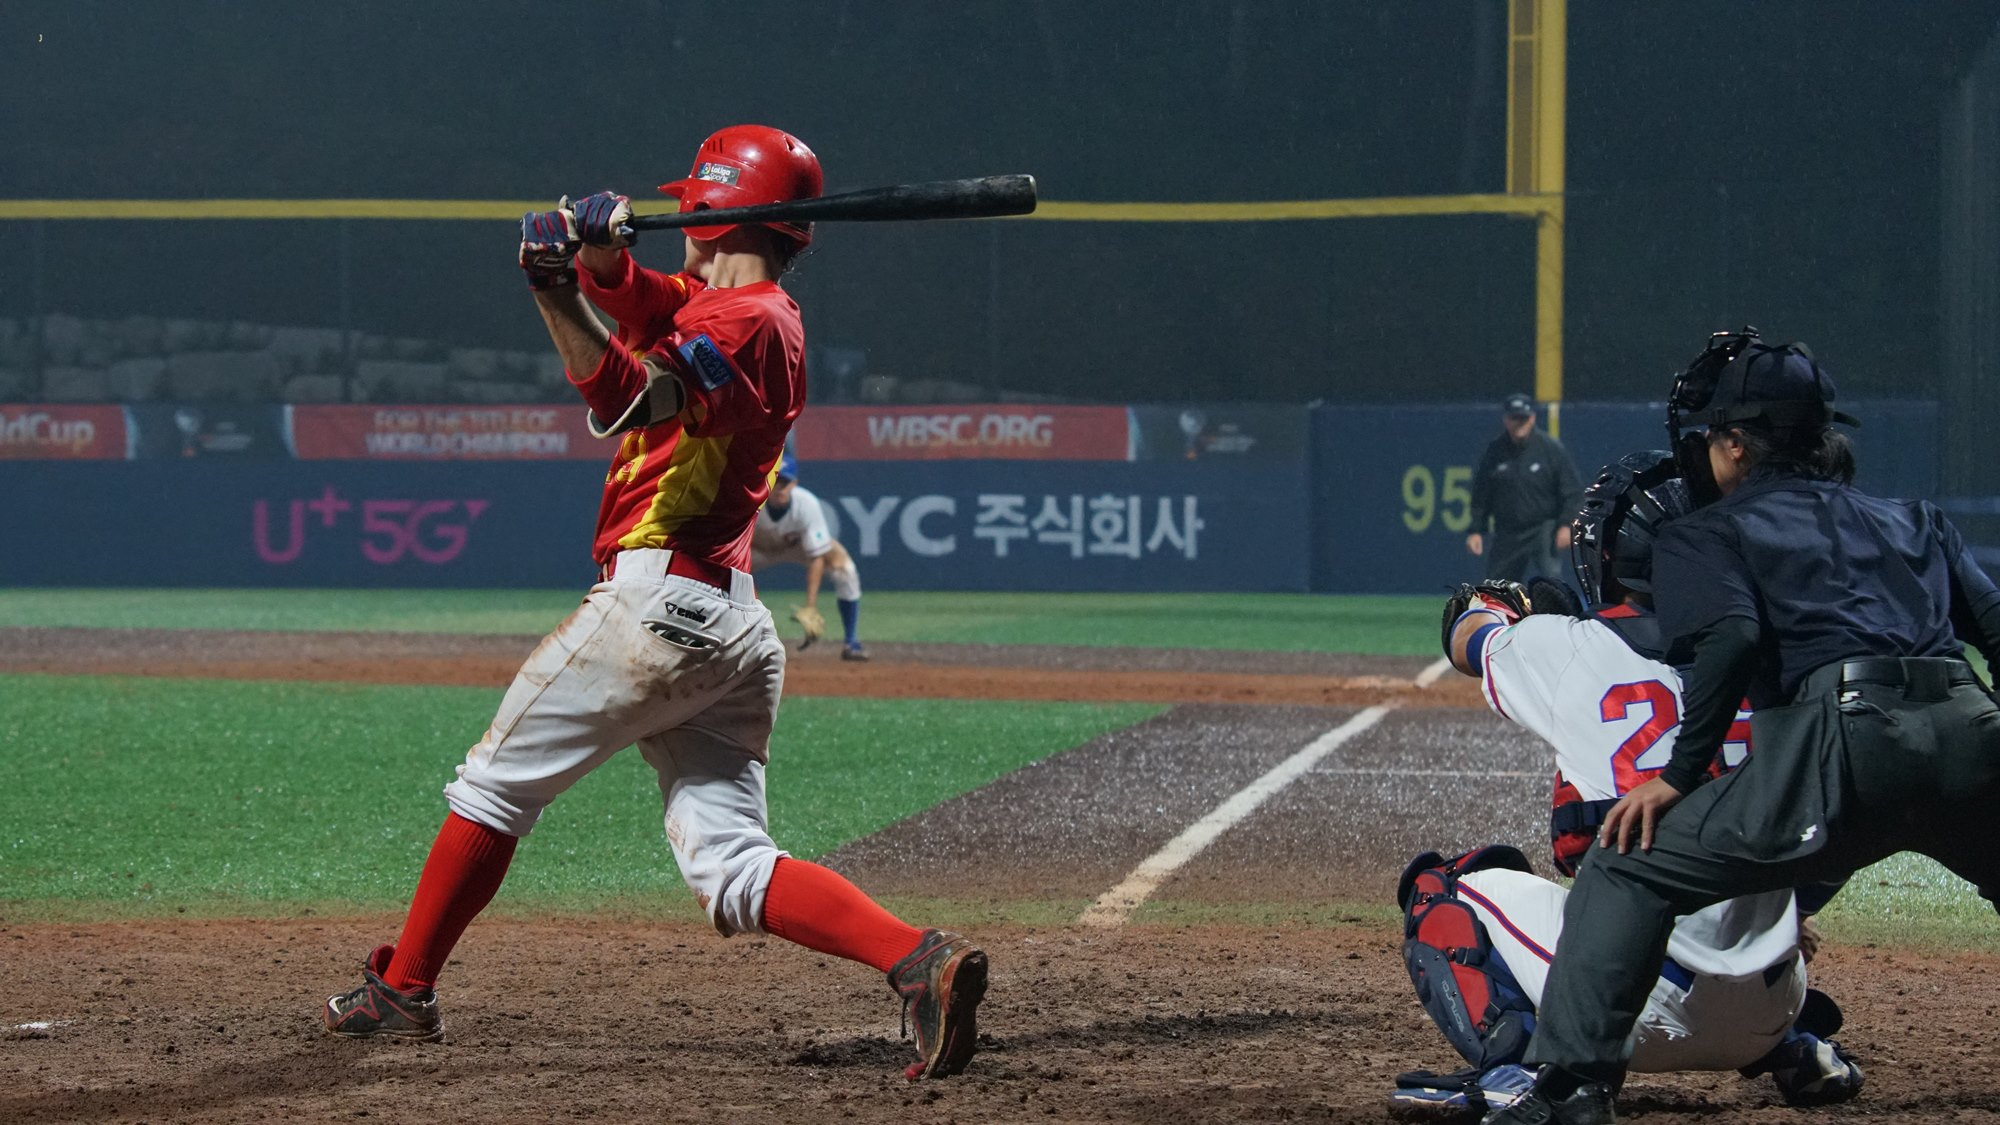 Spain attempted a comeback in the eighth, but fell one run short